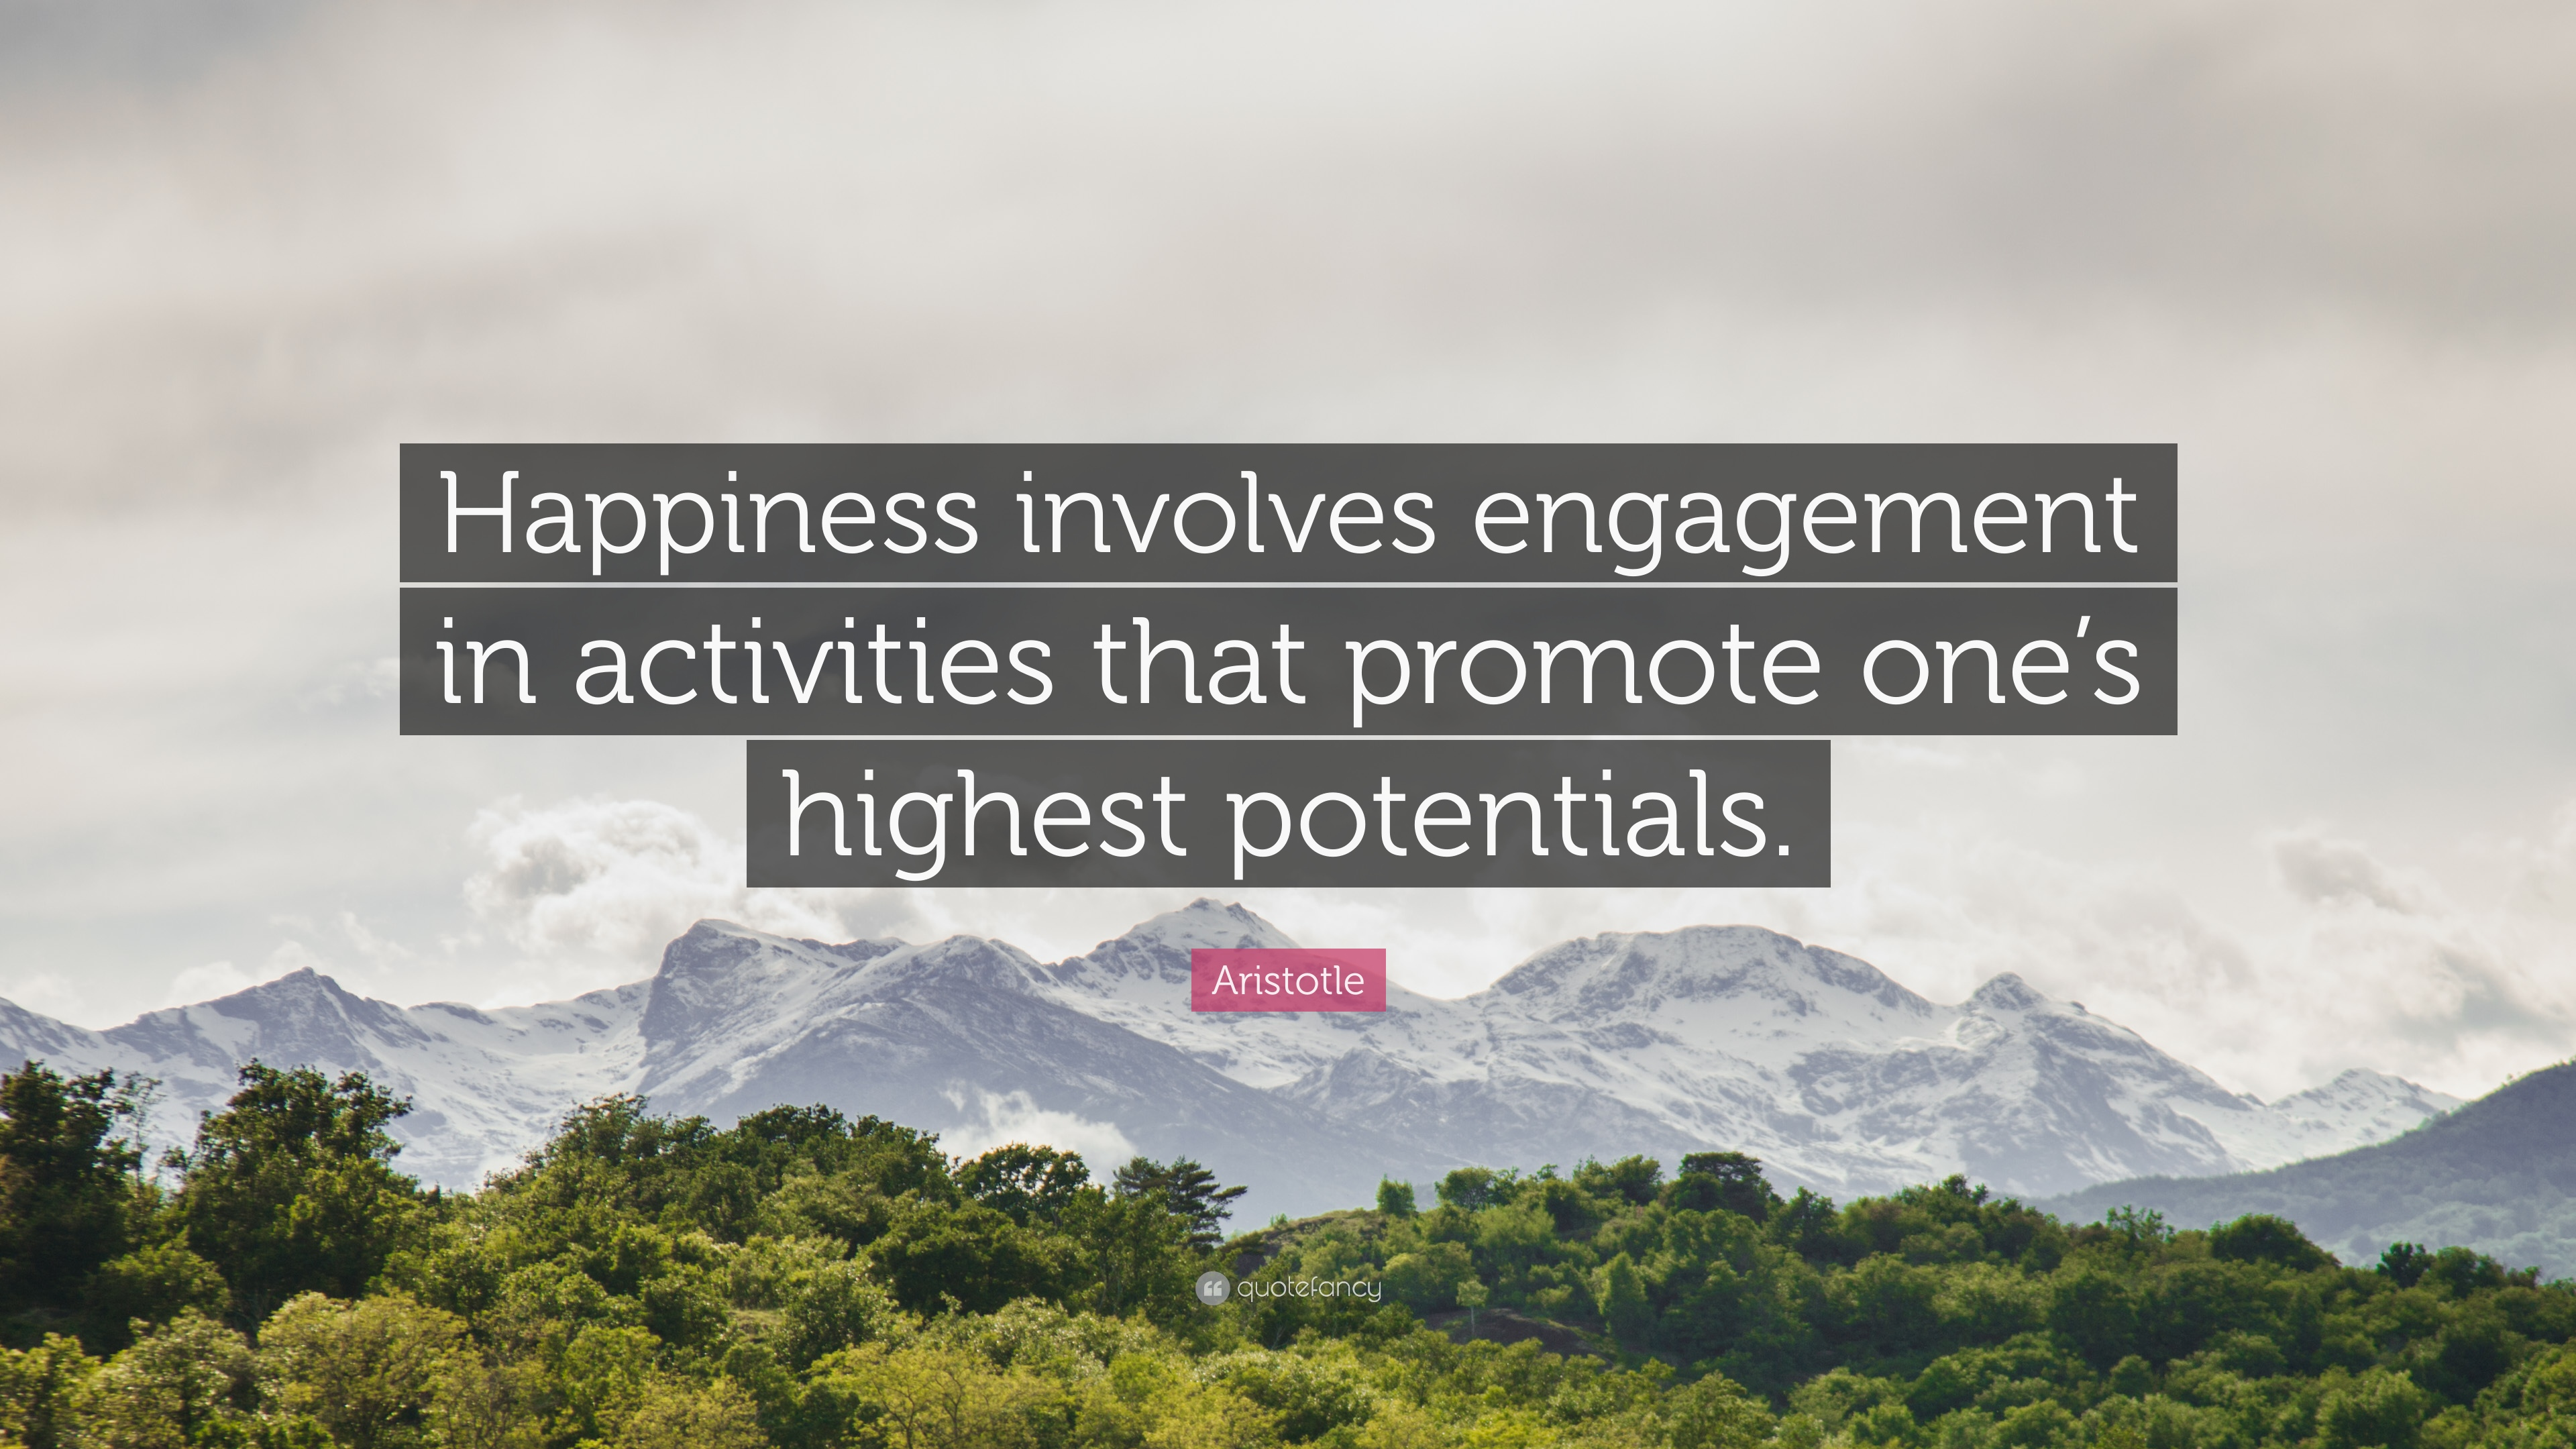 Aristotle quote happiness involves engagement in activities that promote ones highest potentials